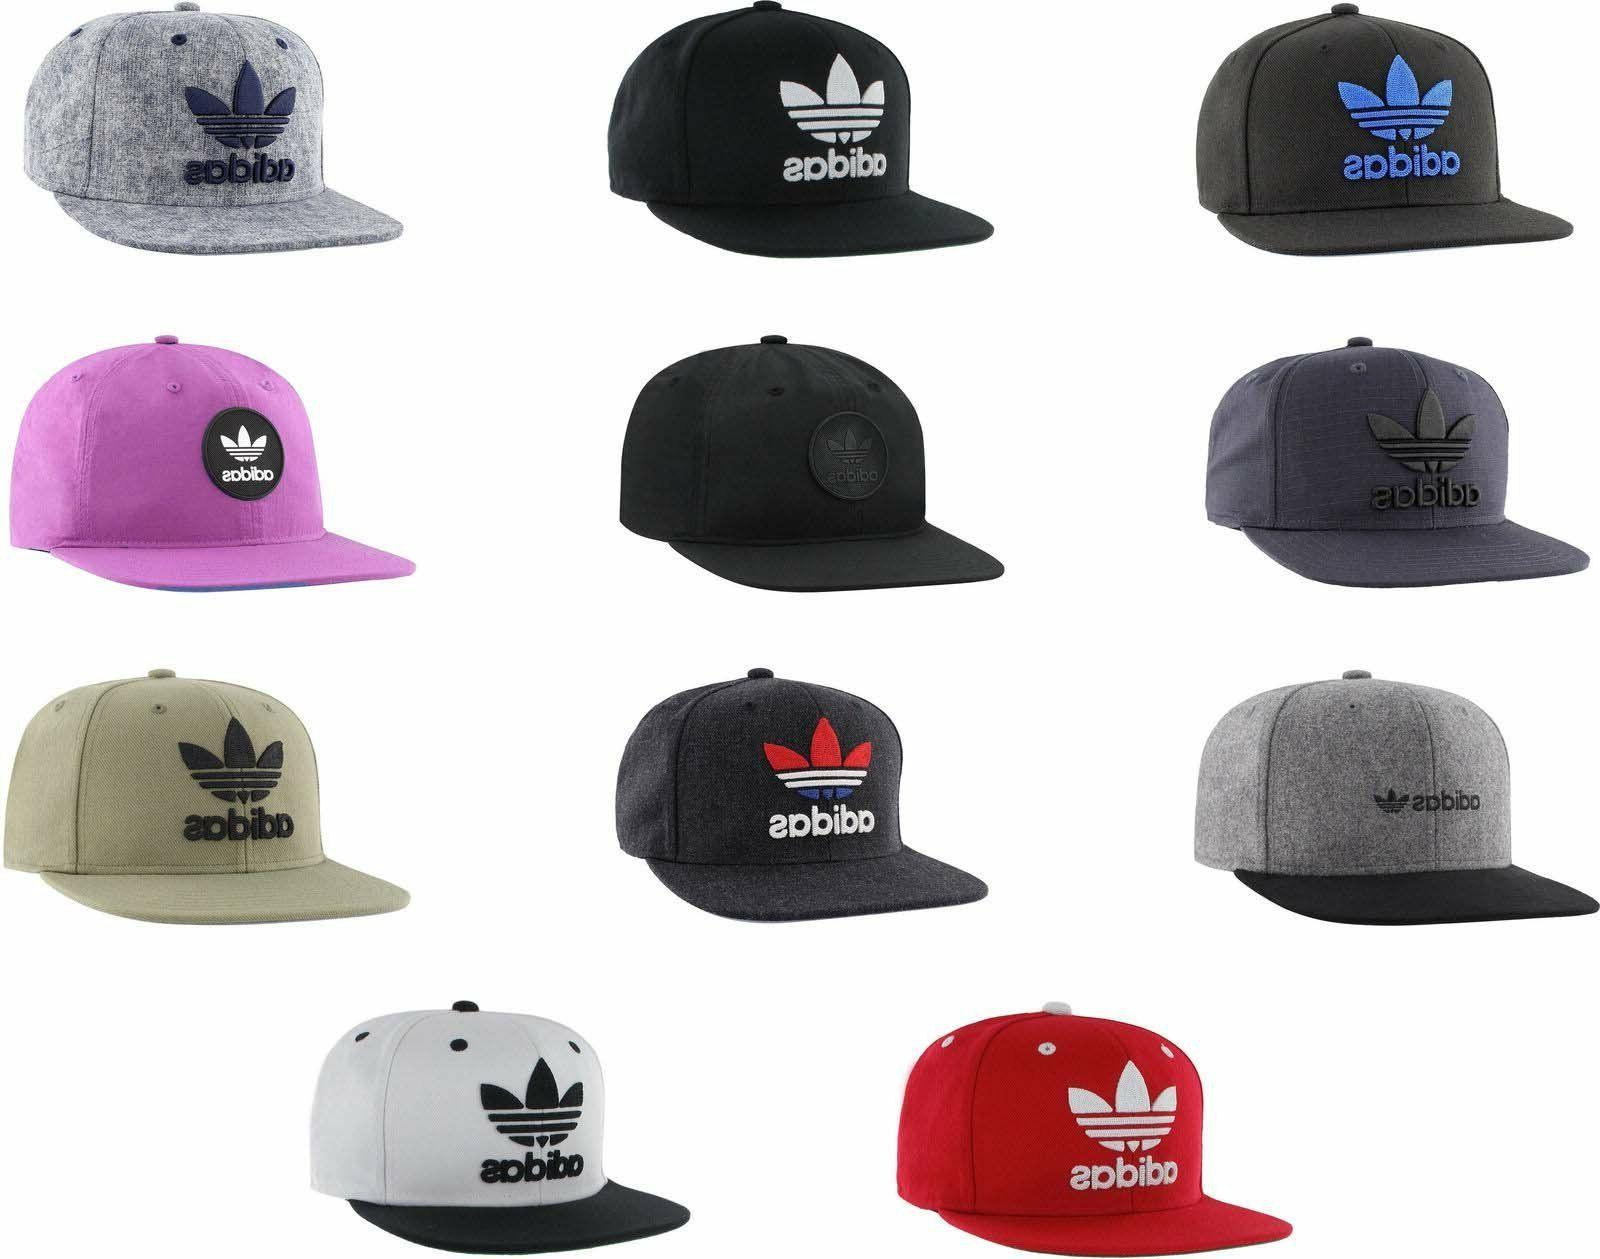 Adidas Men's Originals Snapback Flatbrim Cap Hat Trefoil Log